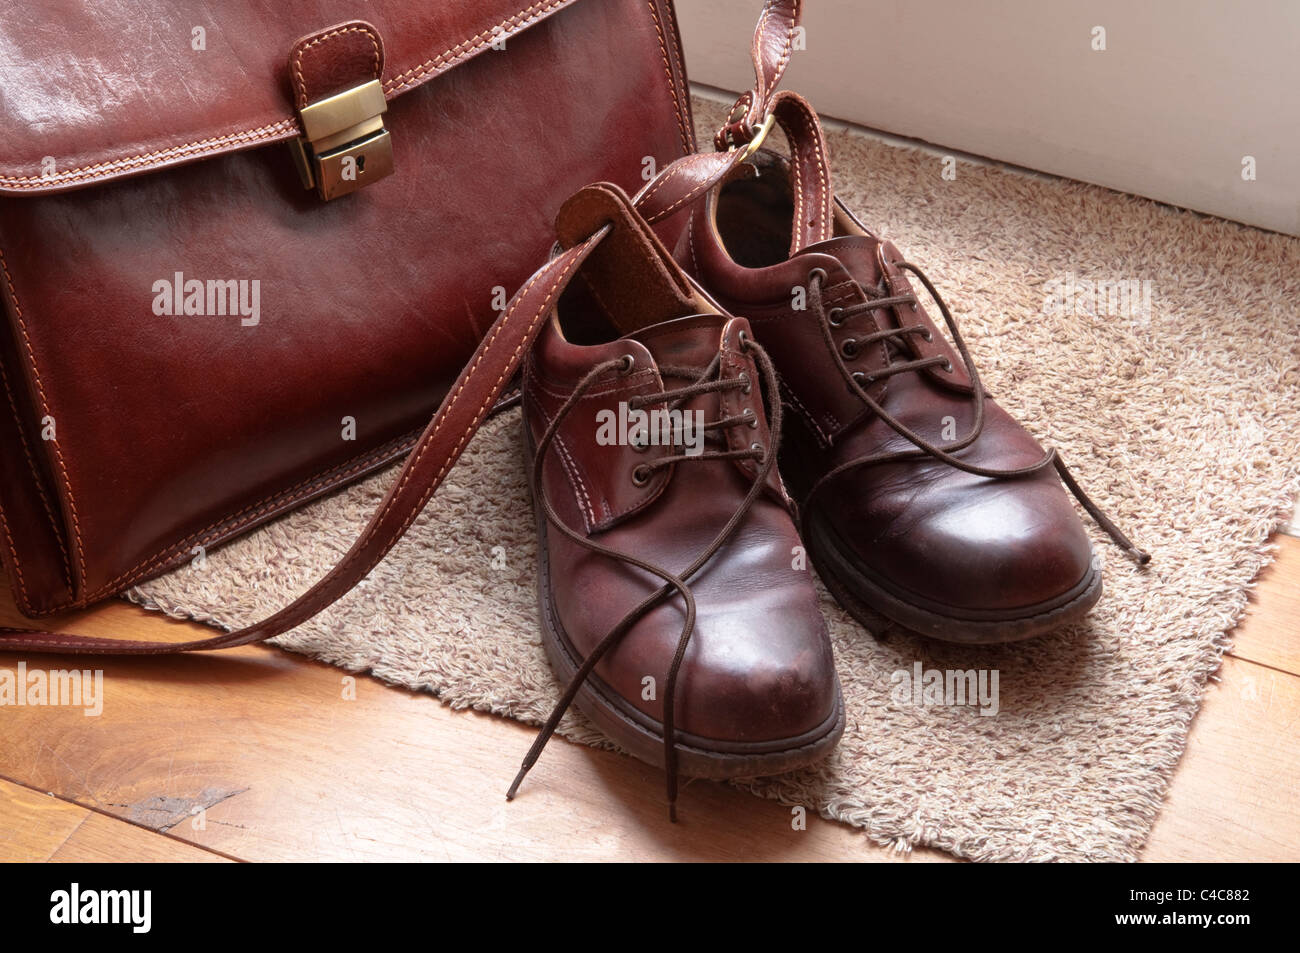 Brown leather shoes and briefcase on a doormat by a door. UK - Stock Image